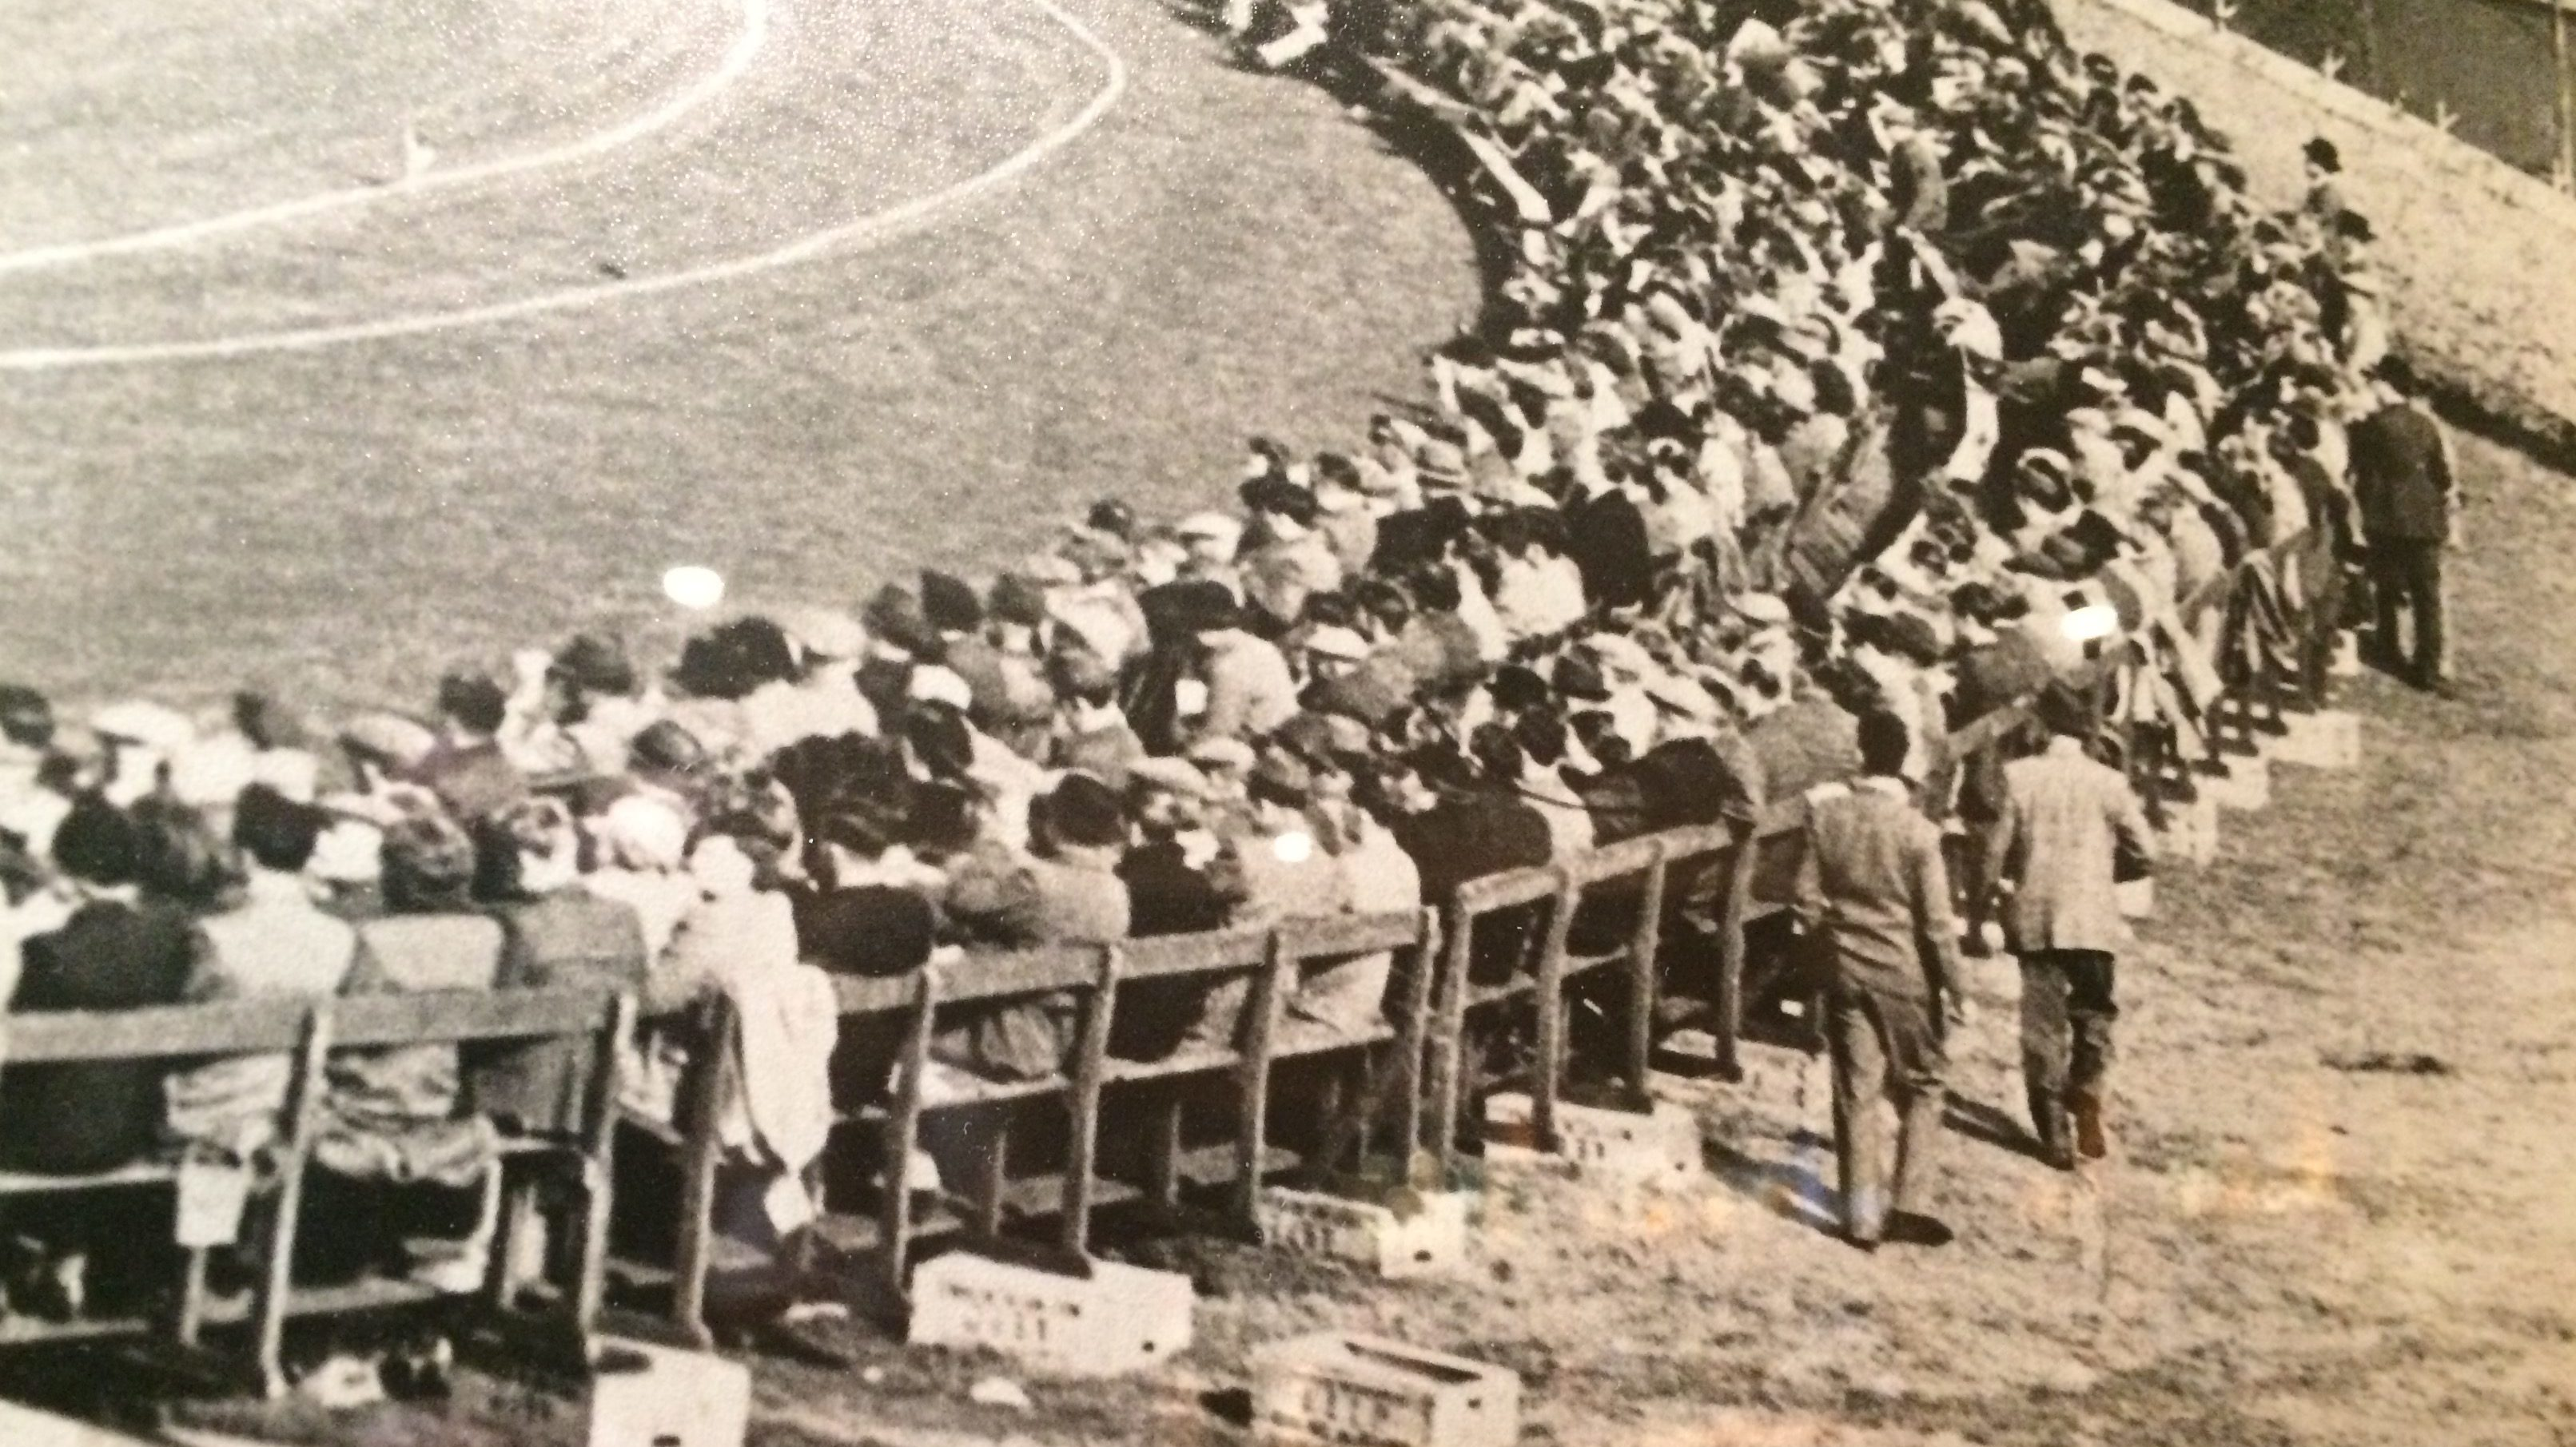 The packed crowds at the Scotland versus Australia match in 1948.